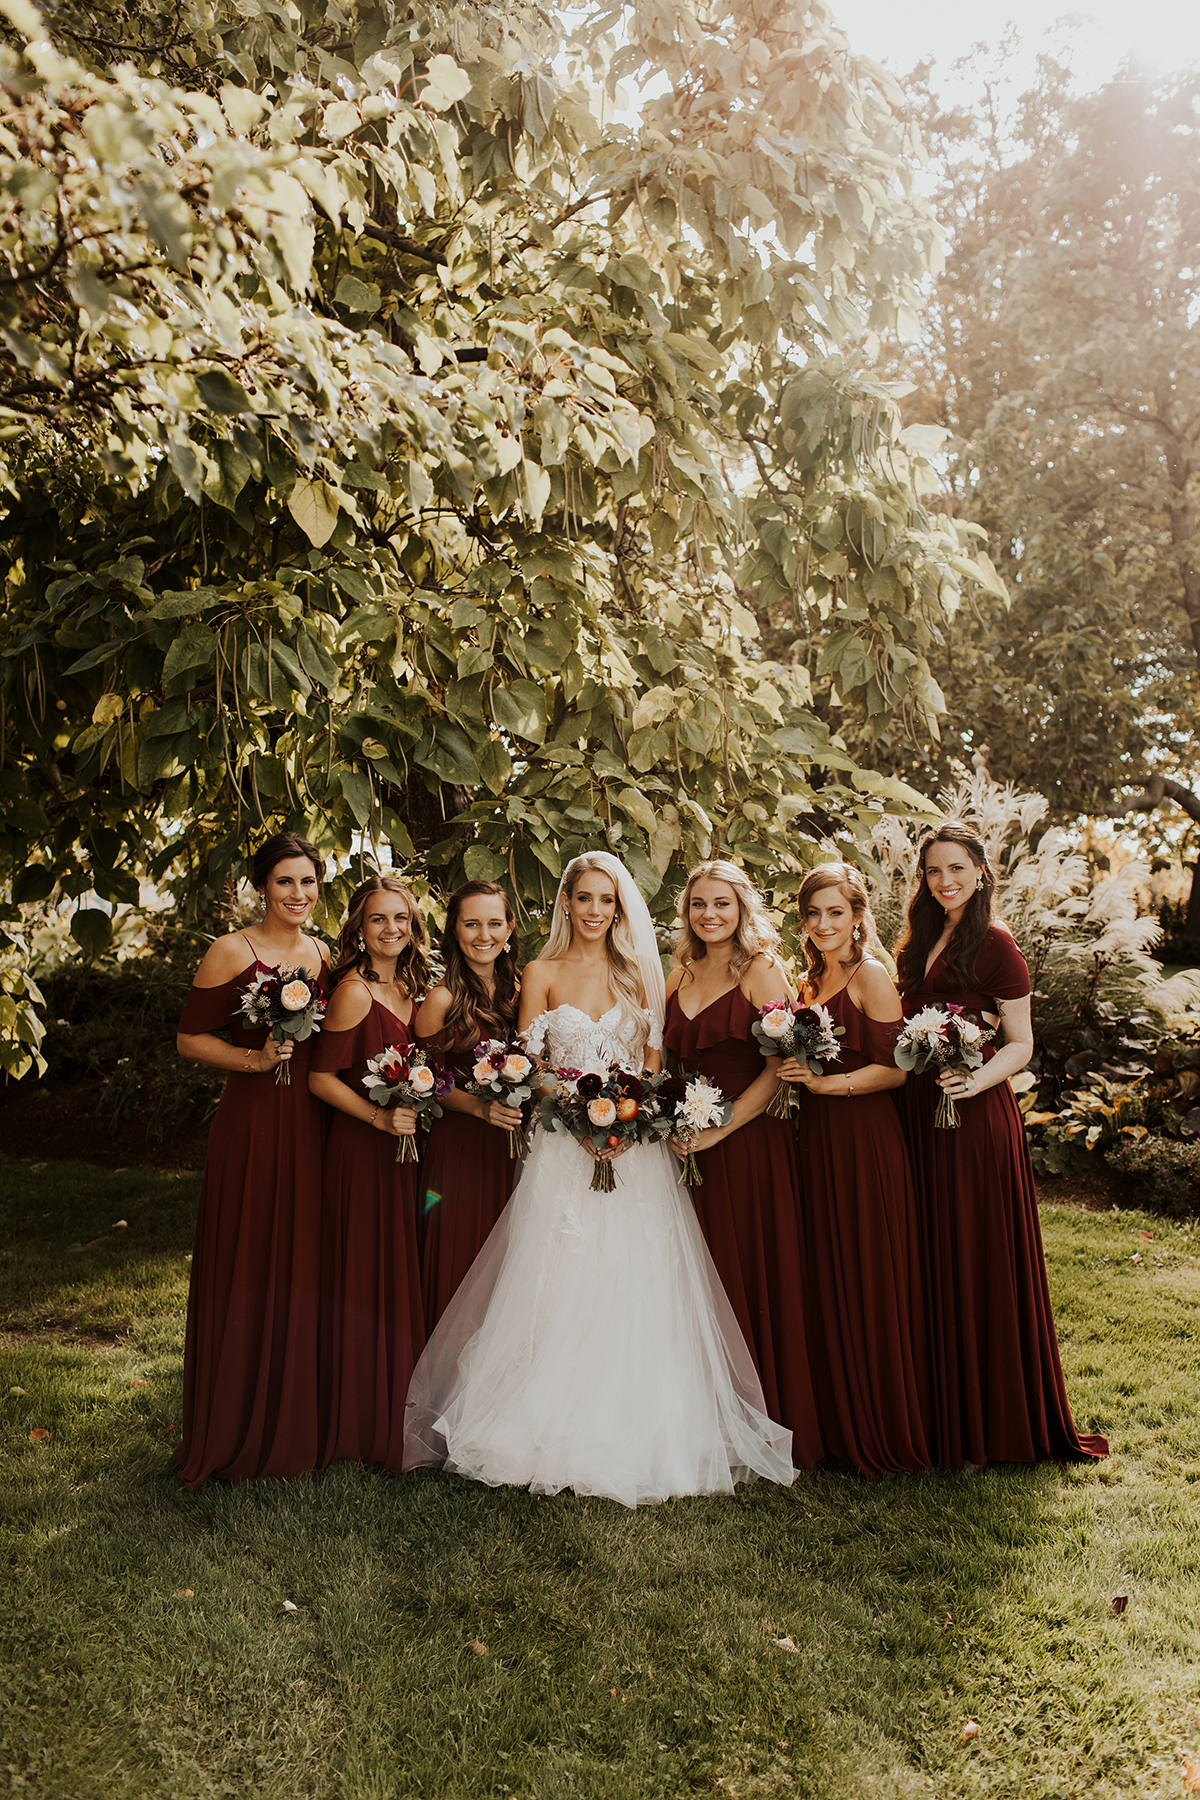 Katies Bliss Wedding Bridesmaids Gowns